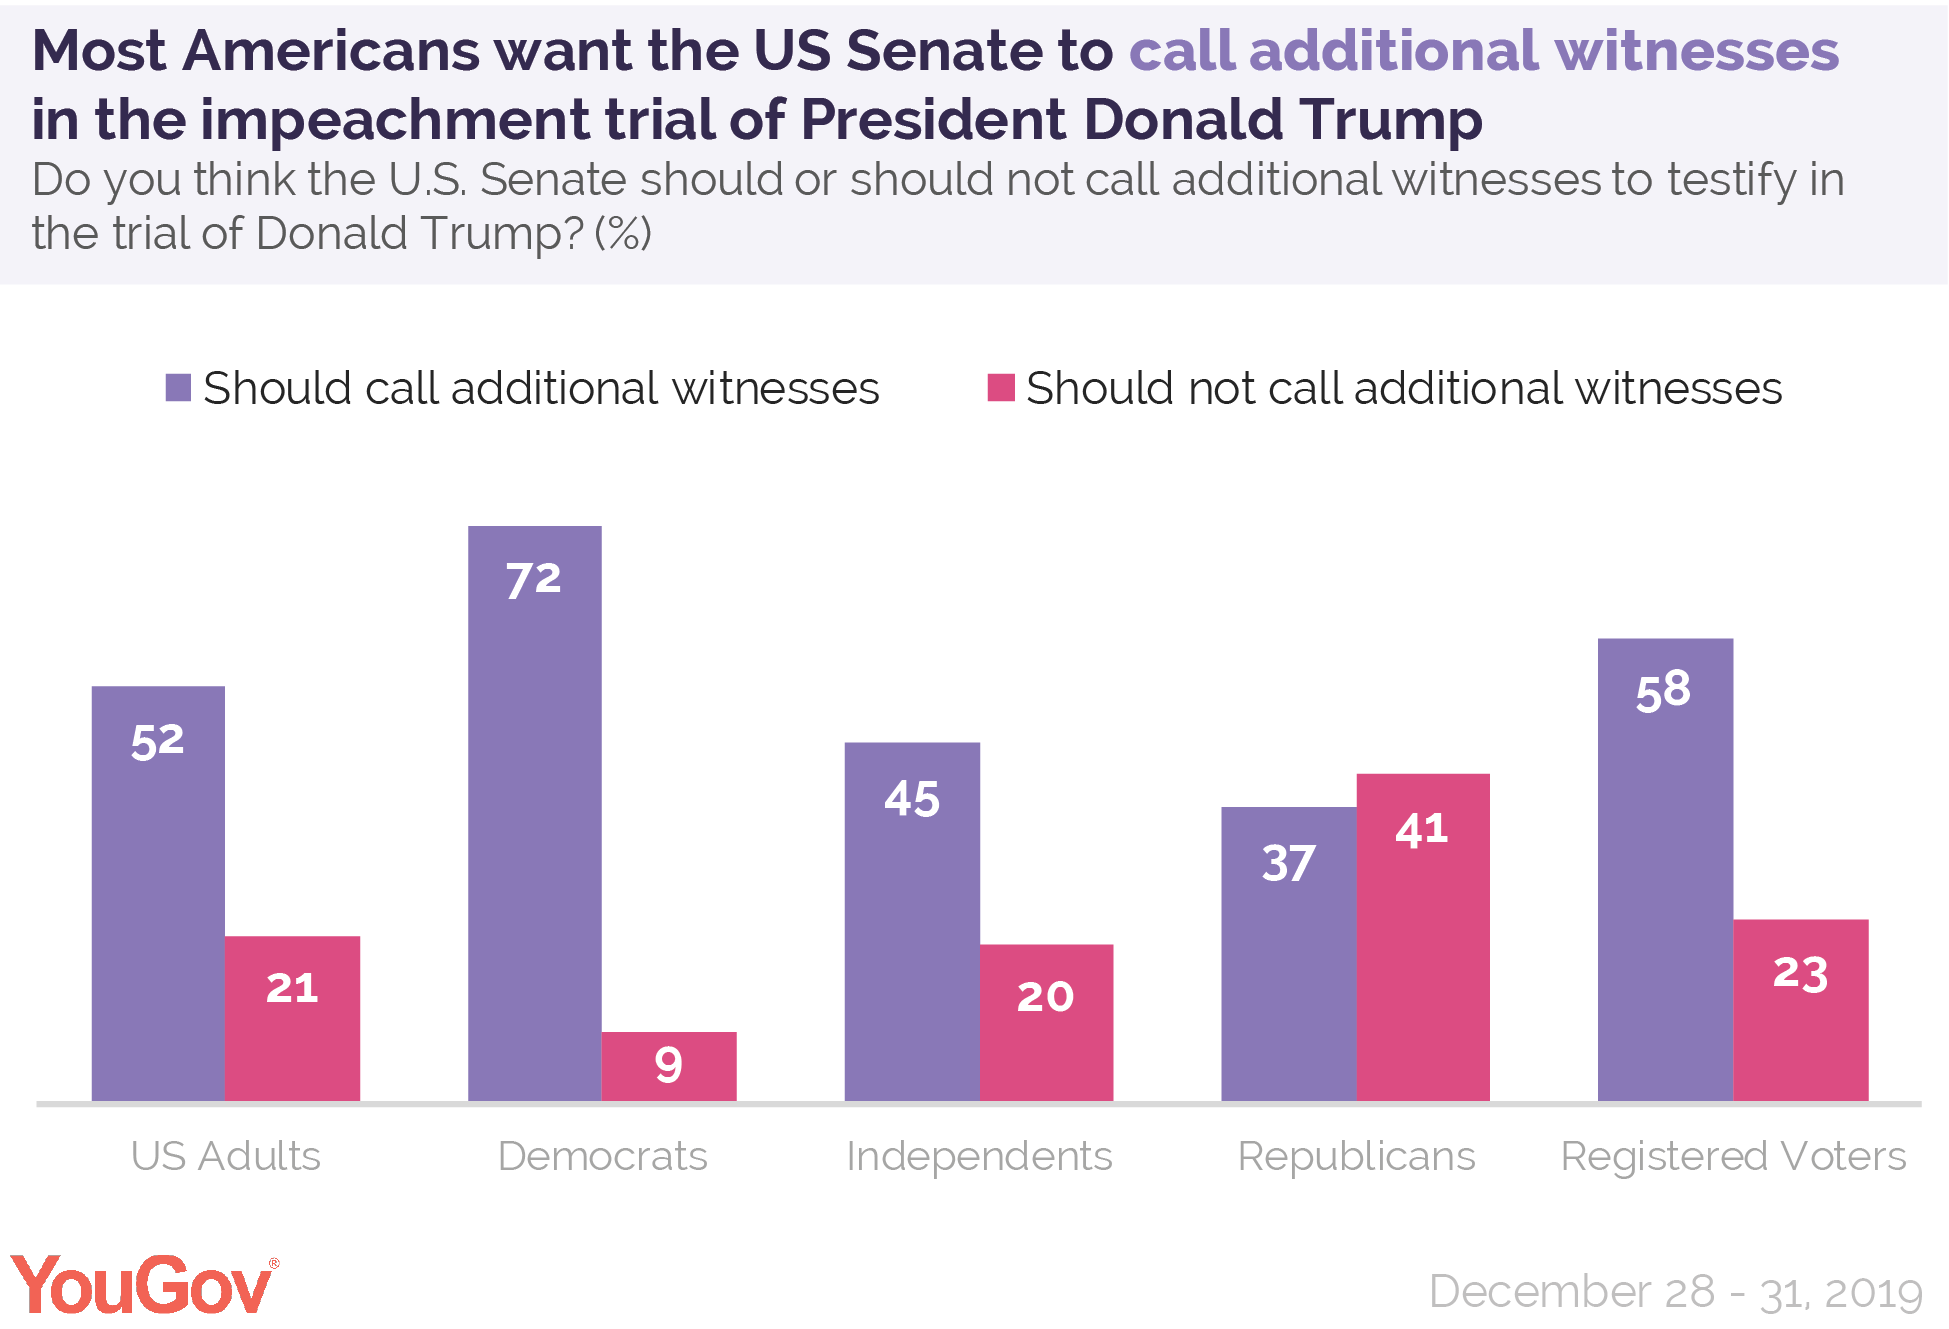 Most Americans want the US Senate to call additional witnesses to the impeachment trial of President Donald Trump